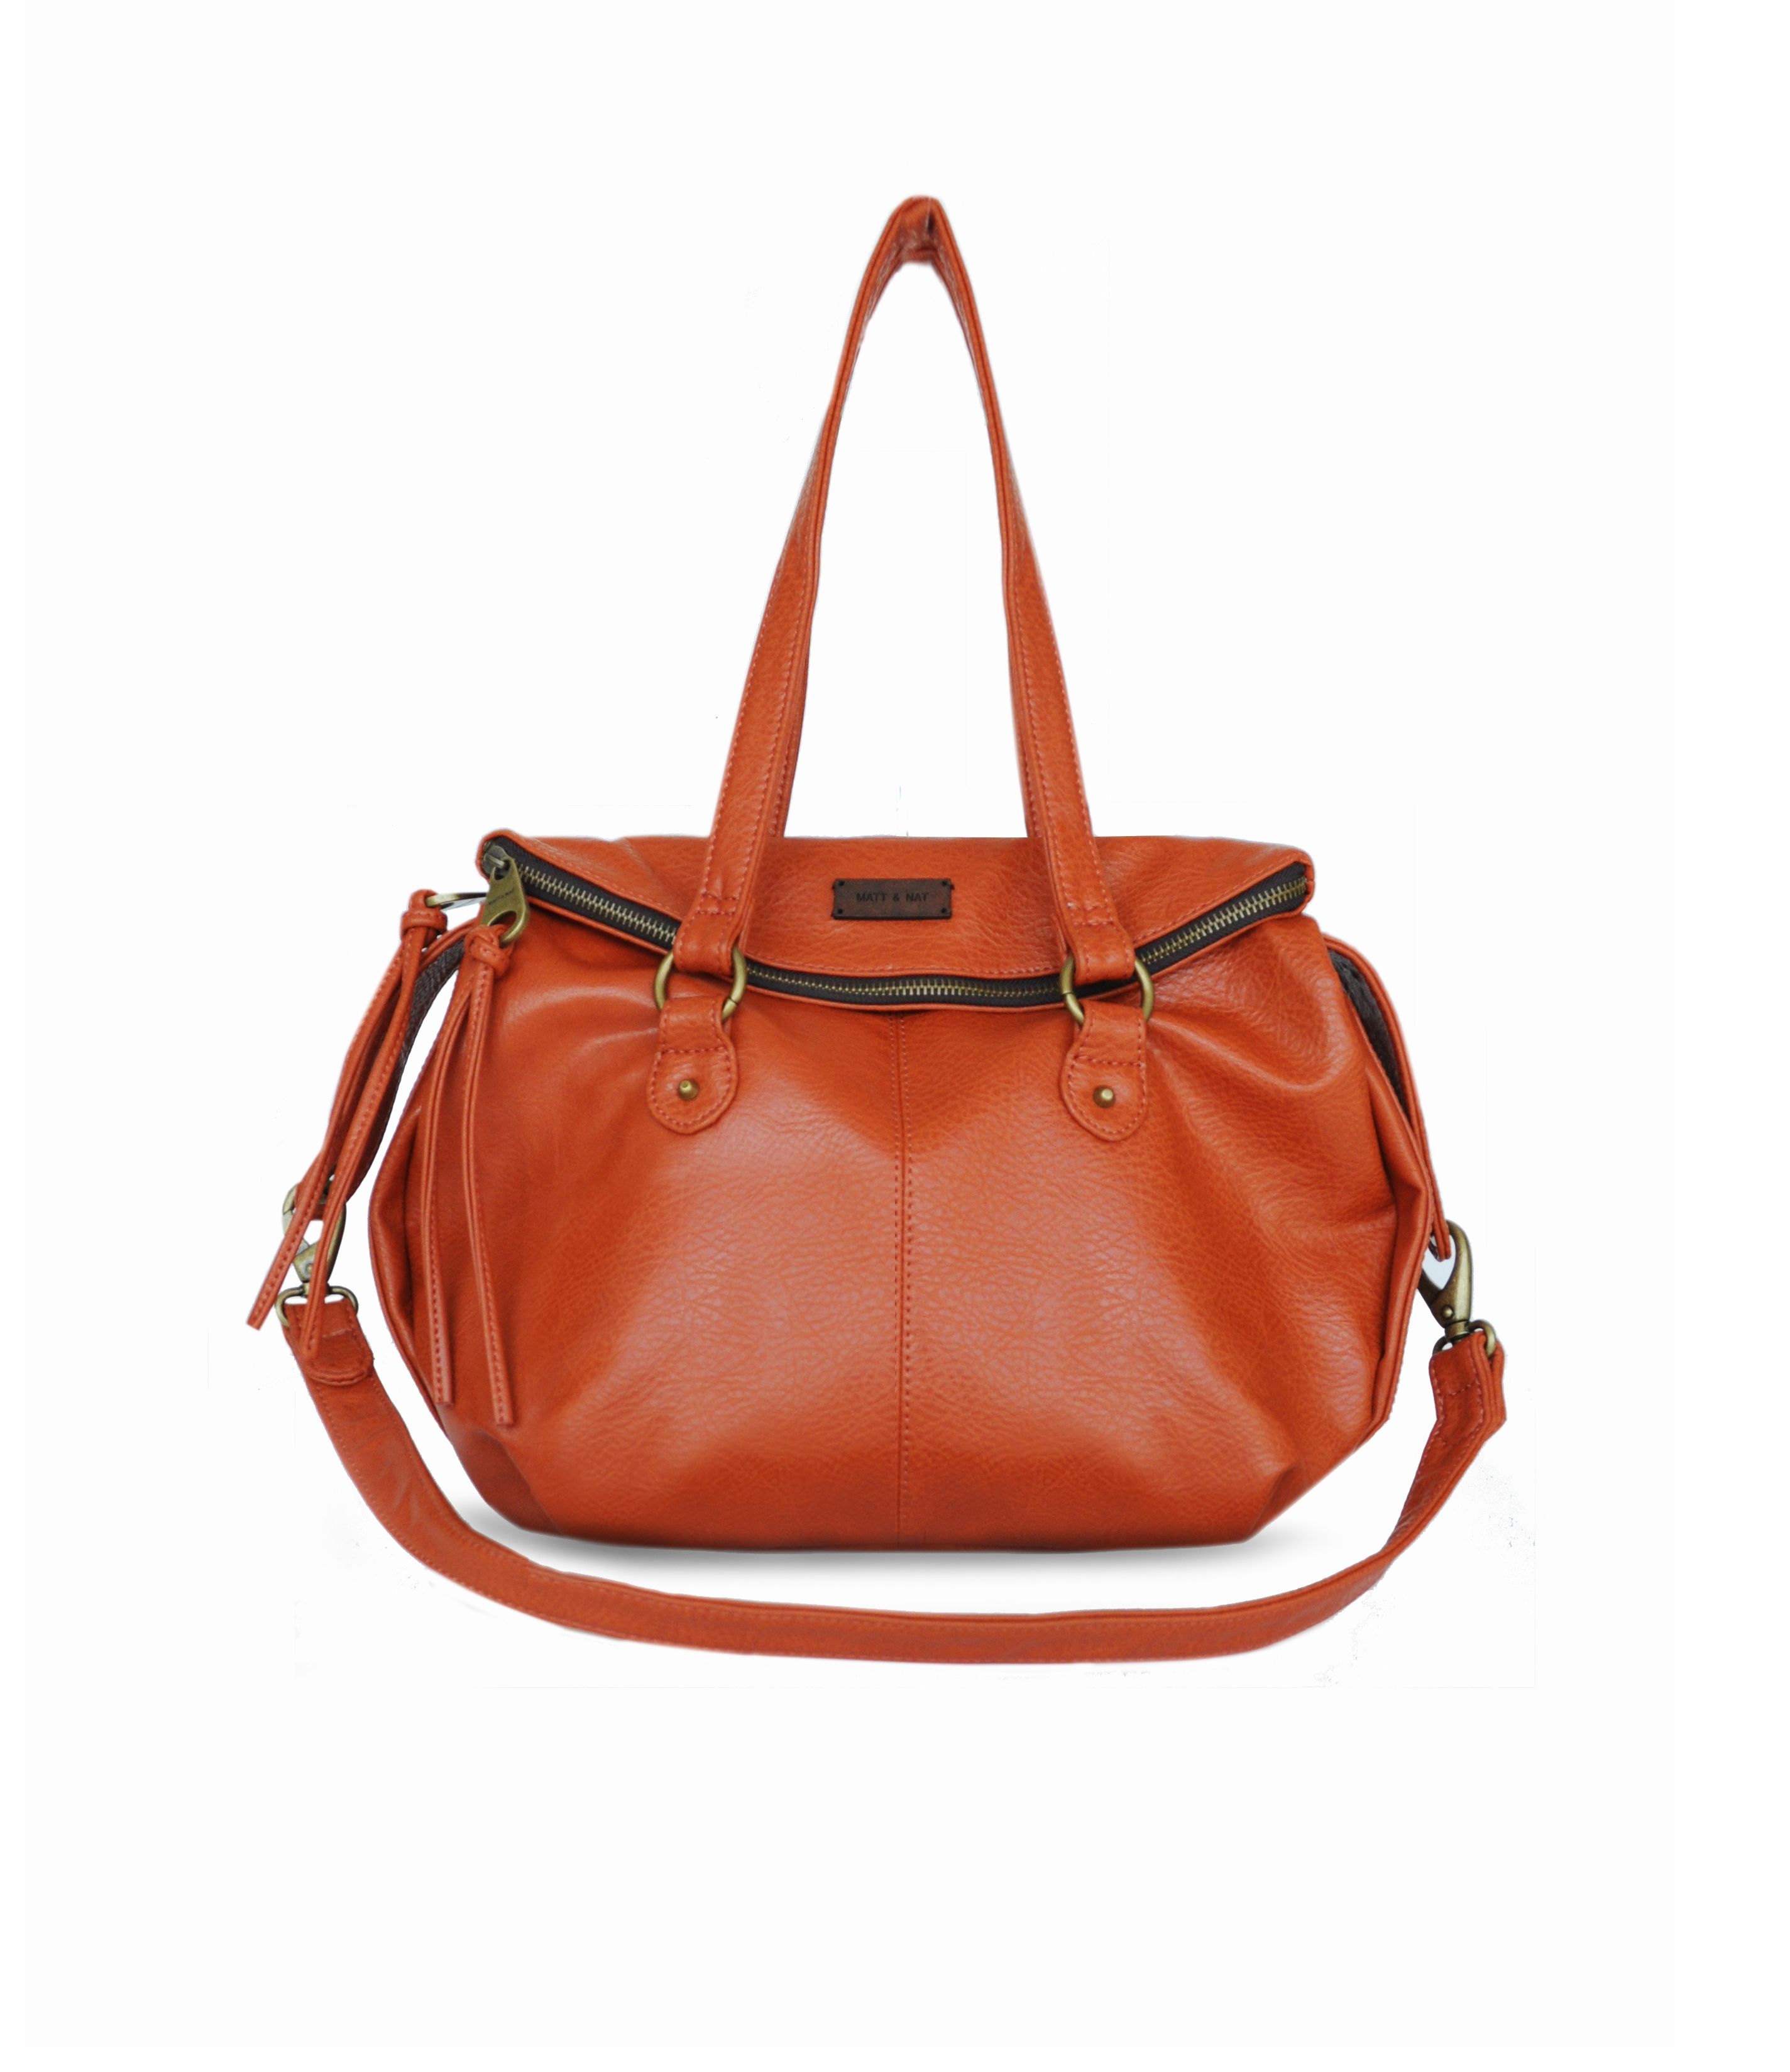 Another Top Pick For Eco Fashion Is This Matt Nat Purse Lined With Fabric Made From Recycled Plastic Bottles